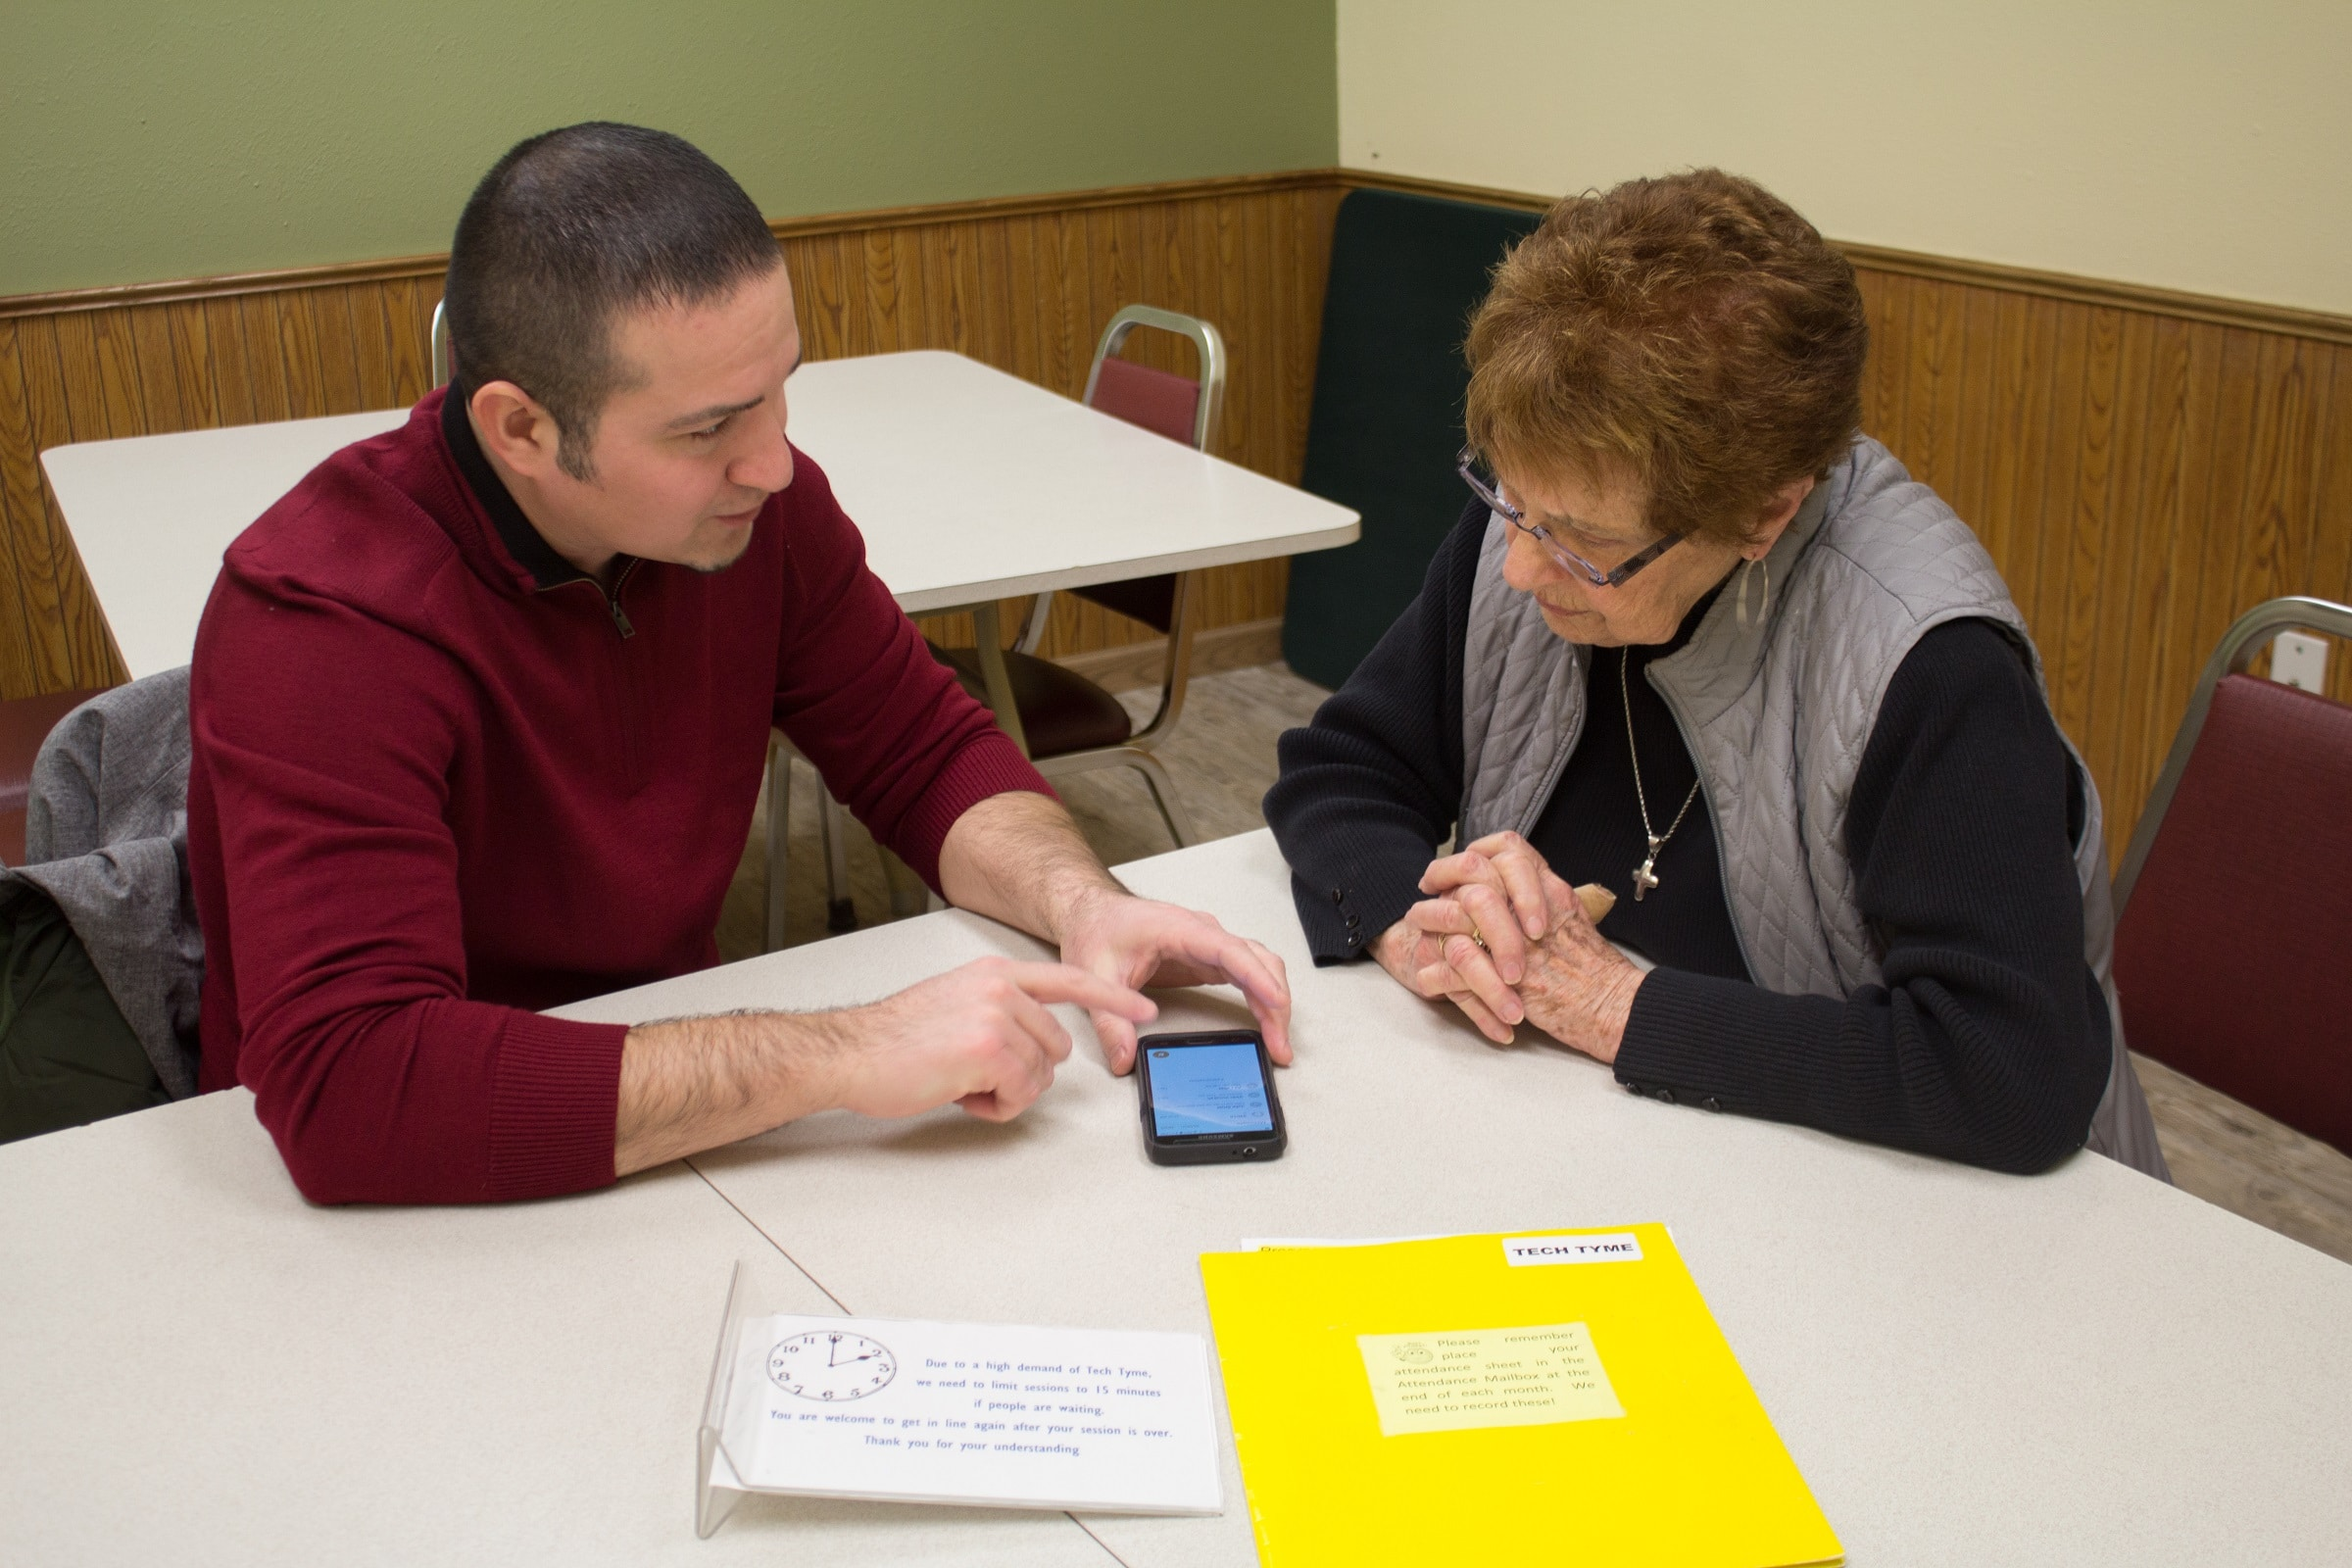 Jose helps senior with cell phone